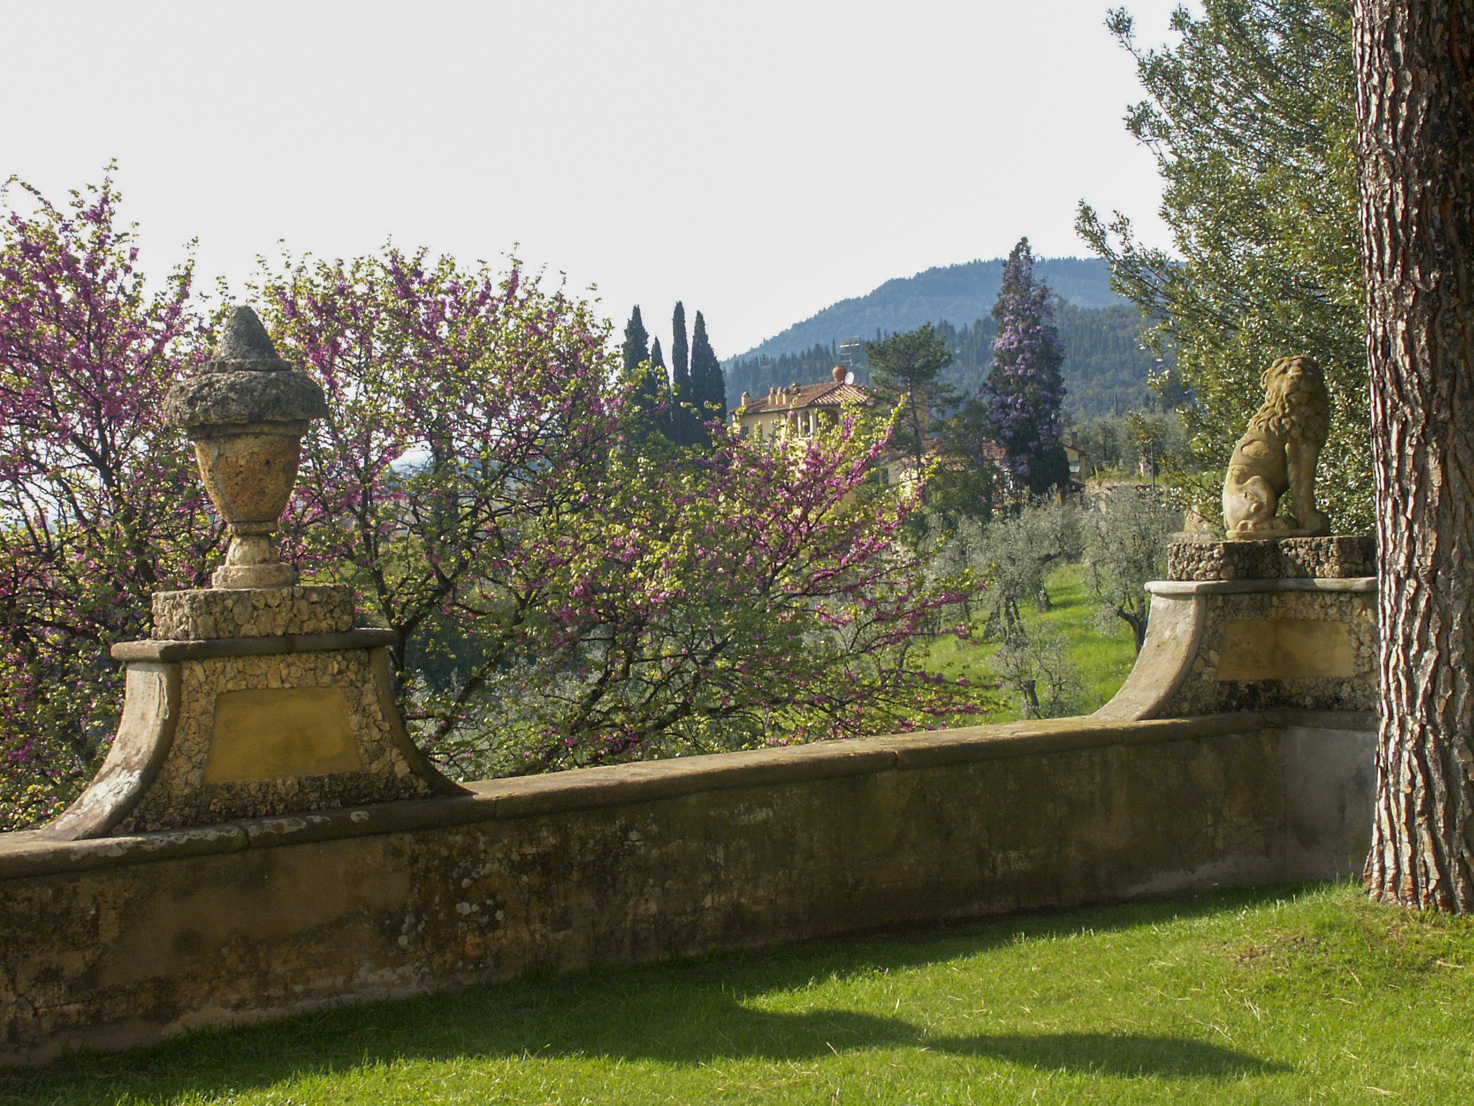 Gardens with view over the countryside